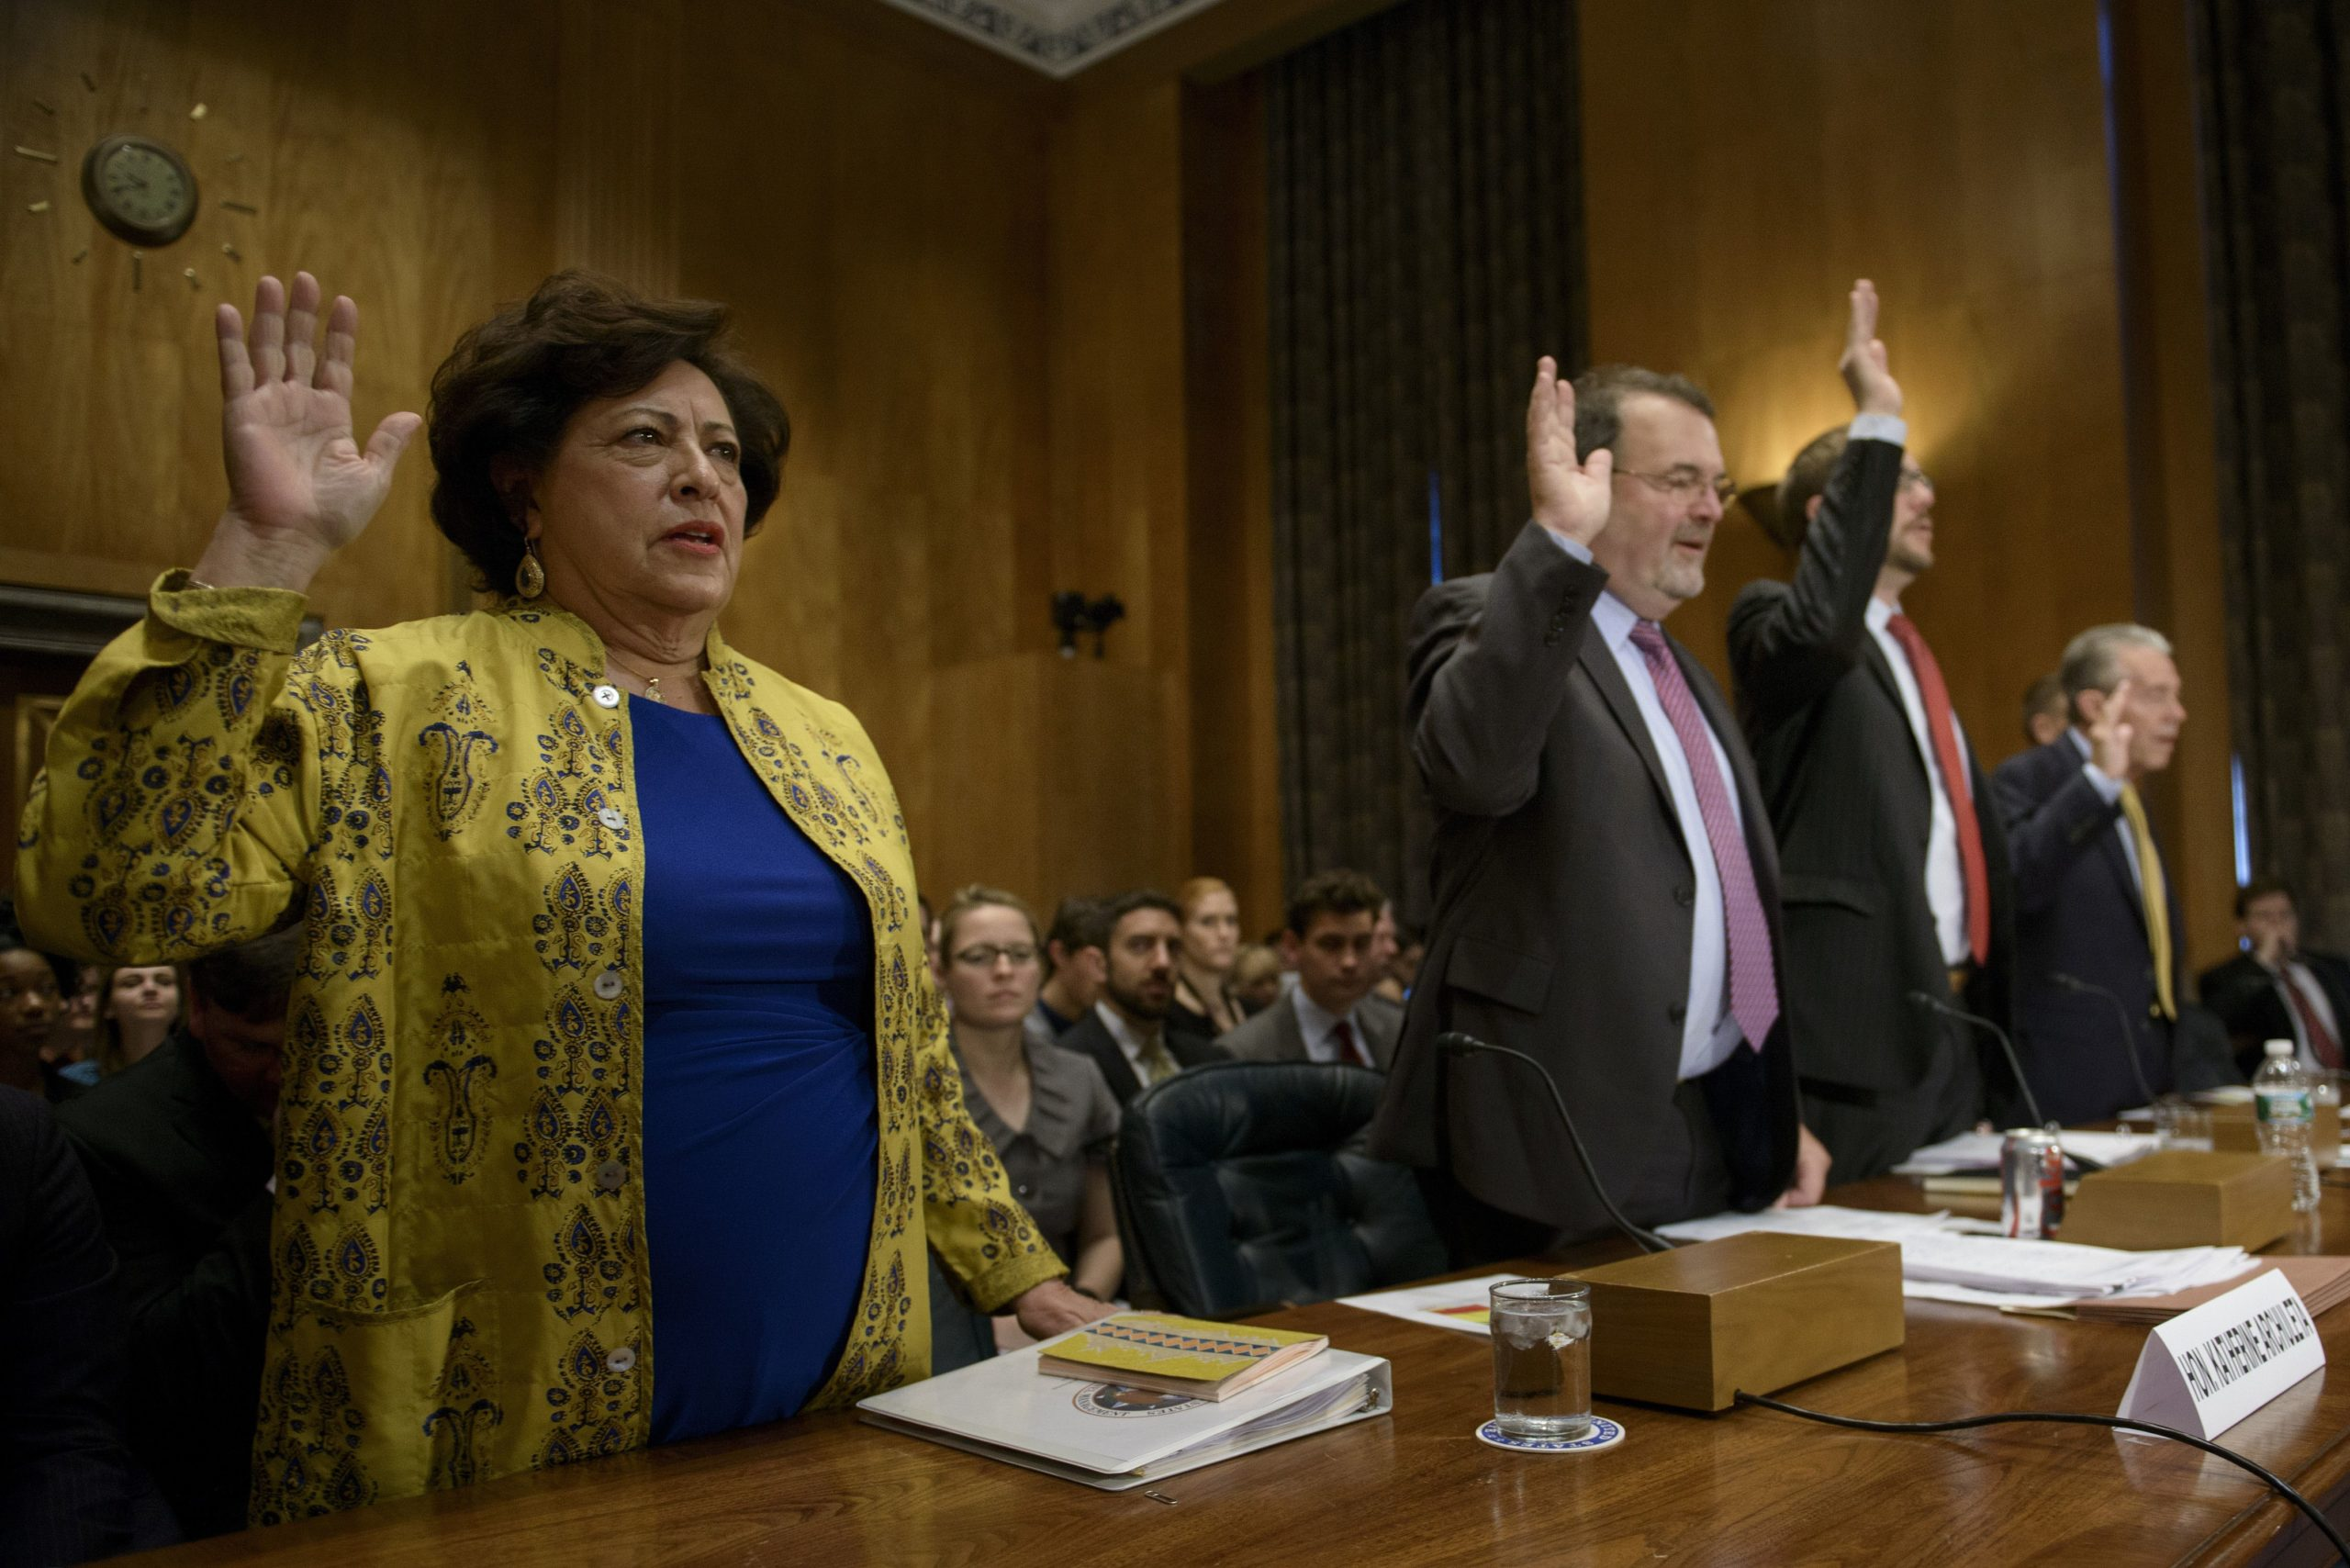 From left Katherine Archuleta, director of the Office of Personnel Management, US Chief Information Officer Tony Scott, Assistant Homeland Security Secretary for National Protection and Programs Andy Ozment, and McFarland, inspector general of the Office of Personnel Management, are sworn in during a hearing of the Senate Homeland Security and Governmental Affairs Committee on Capitol Hill June 25, 2015 in Washington, DC. Witnesses testified about the hacking of Office of Personnel Management data. AFP PHOTO/BRENDAN SMIALOWSKI (Photo credit should read BRENDAN SMIALOWSKI/AFP via Getty Images)